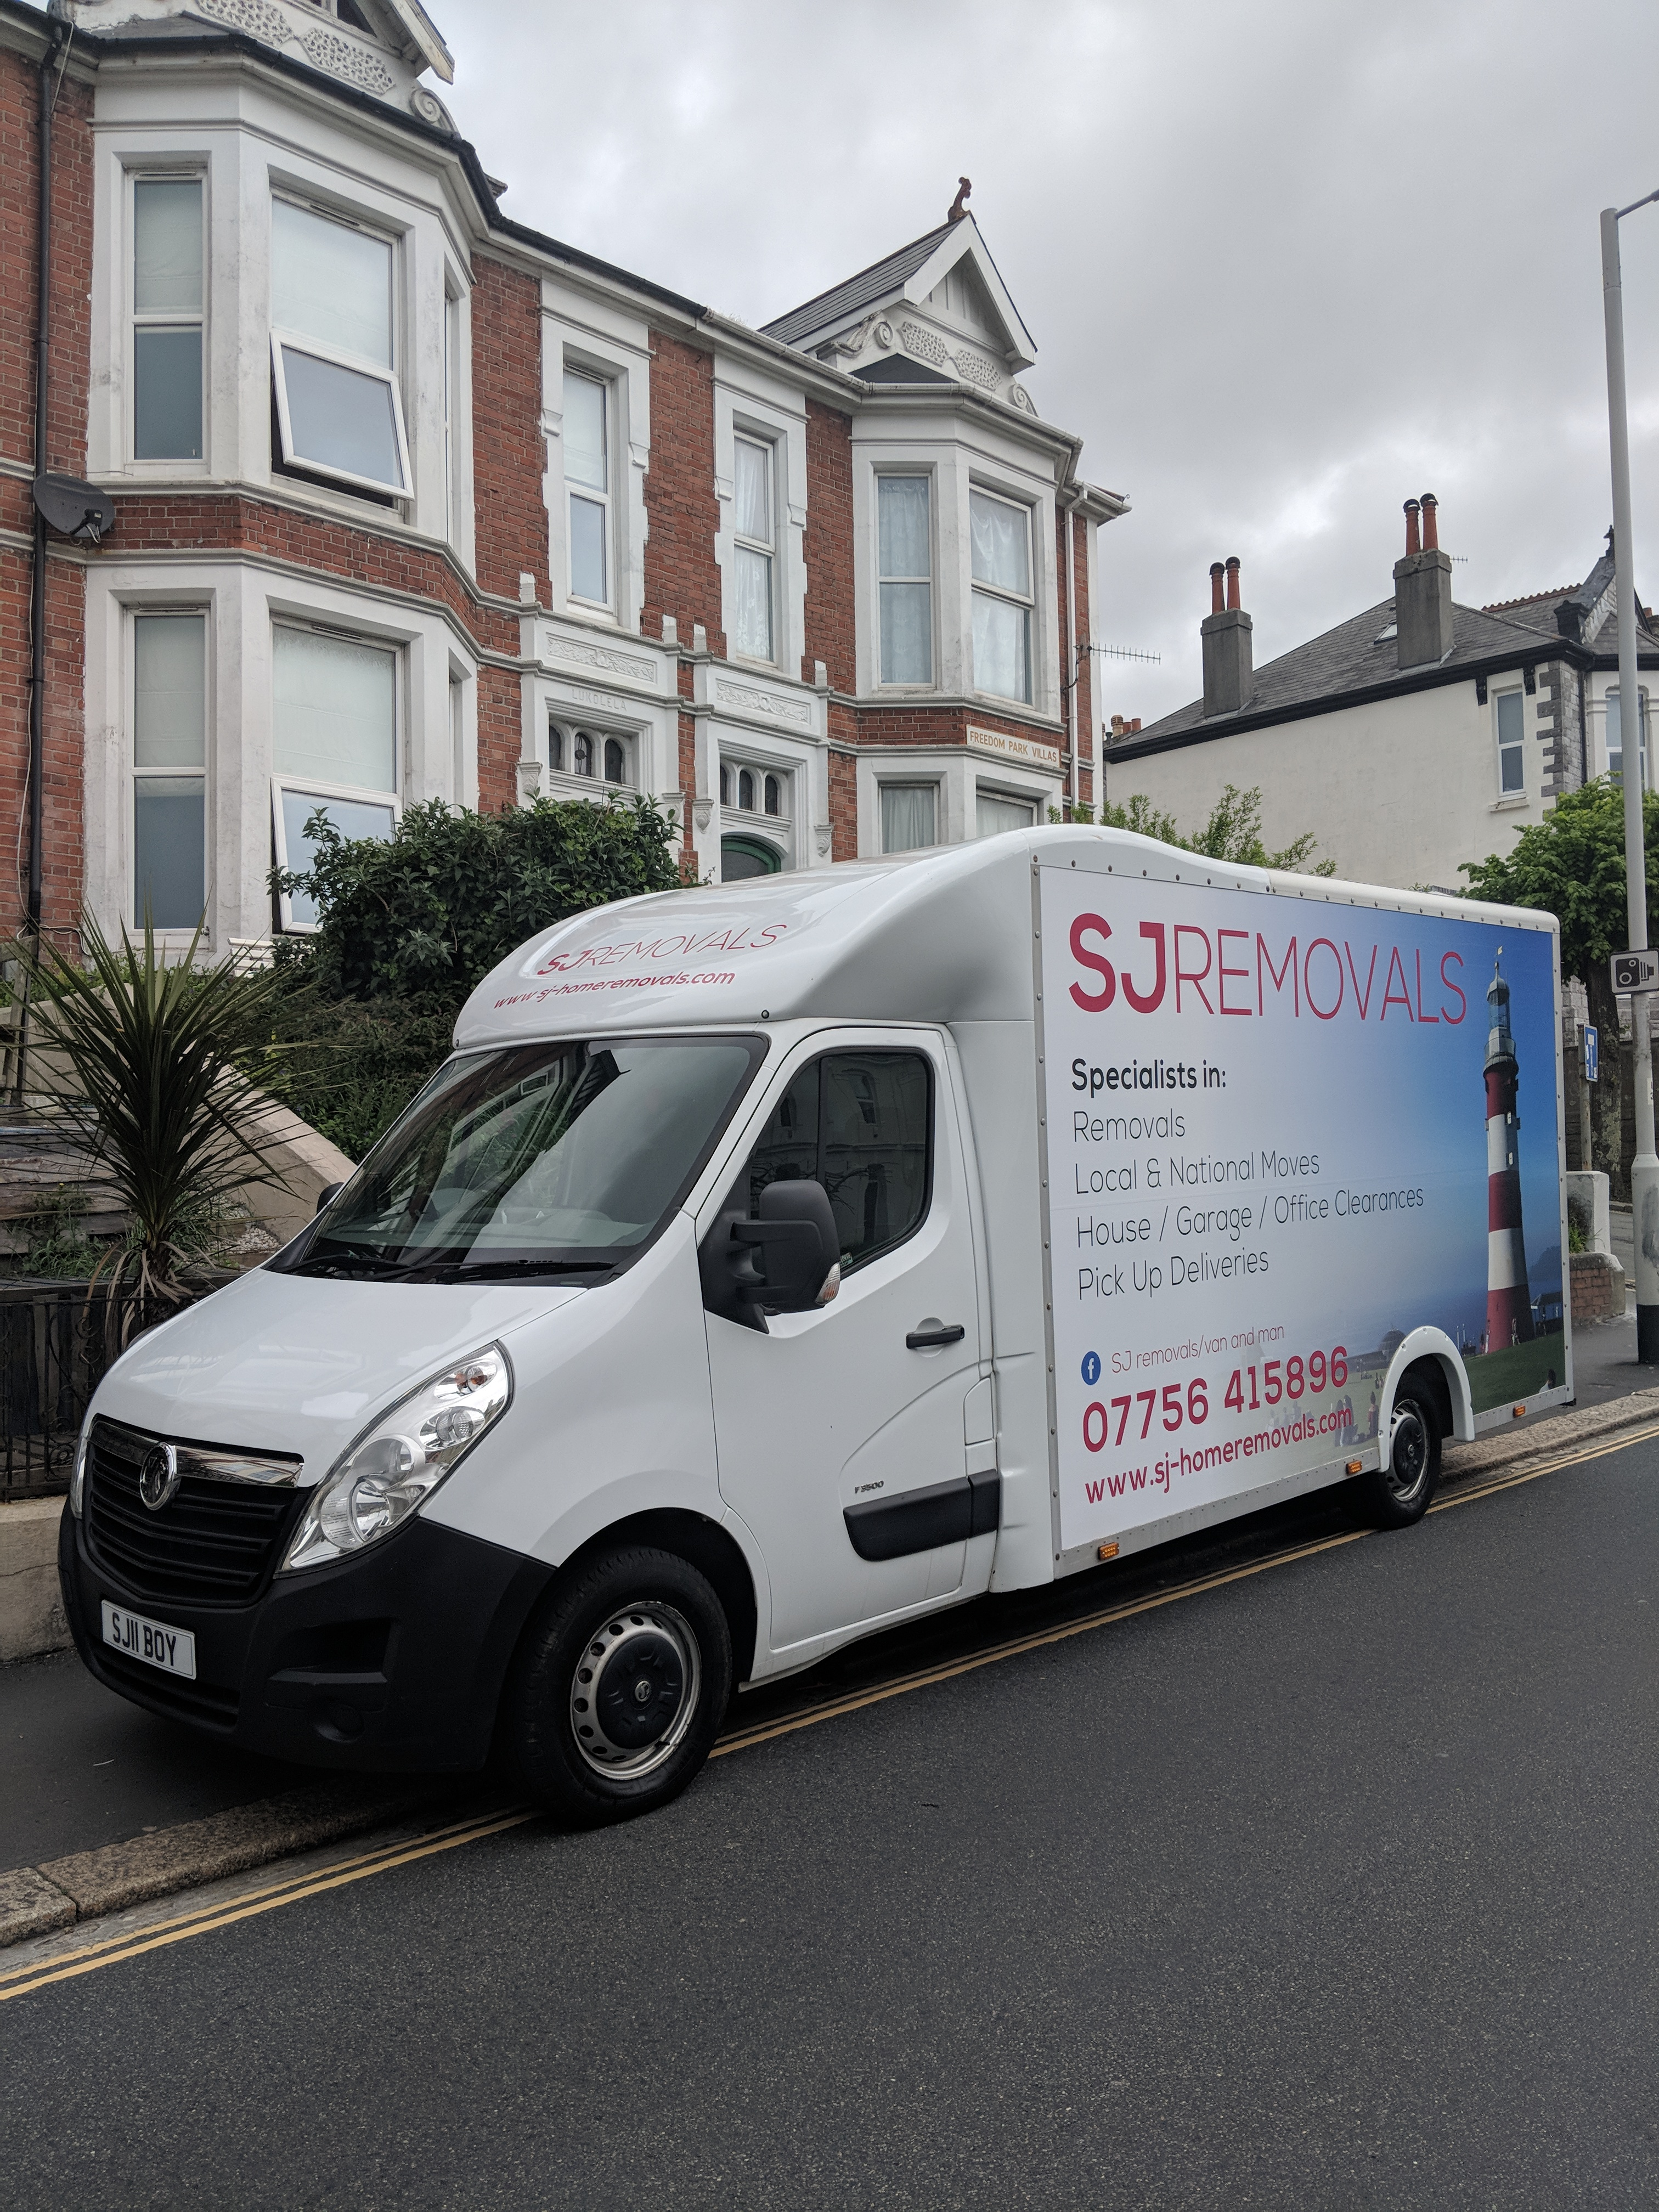 Sofa Gumtree Paignton Find The Best Man And Van Services In Paignton Bark